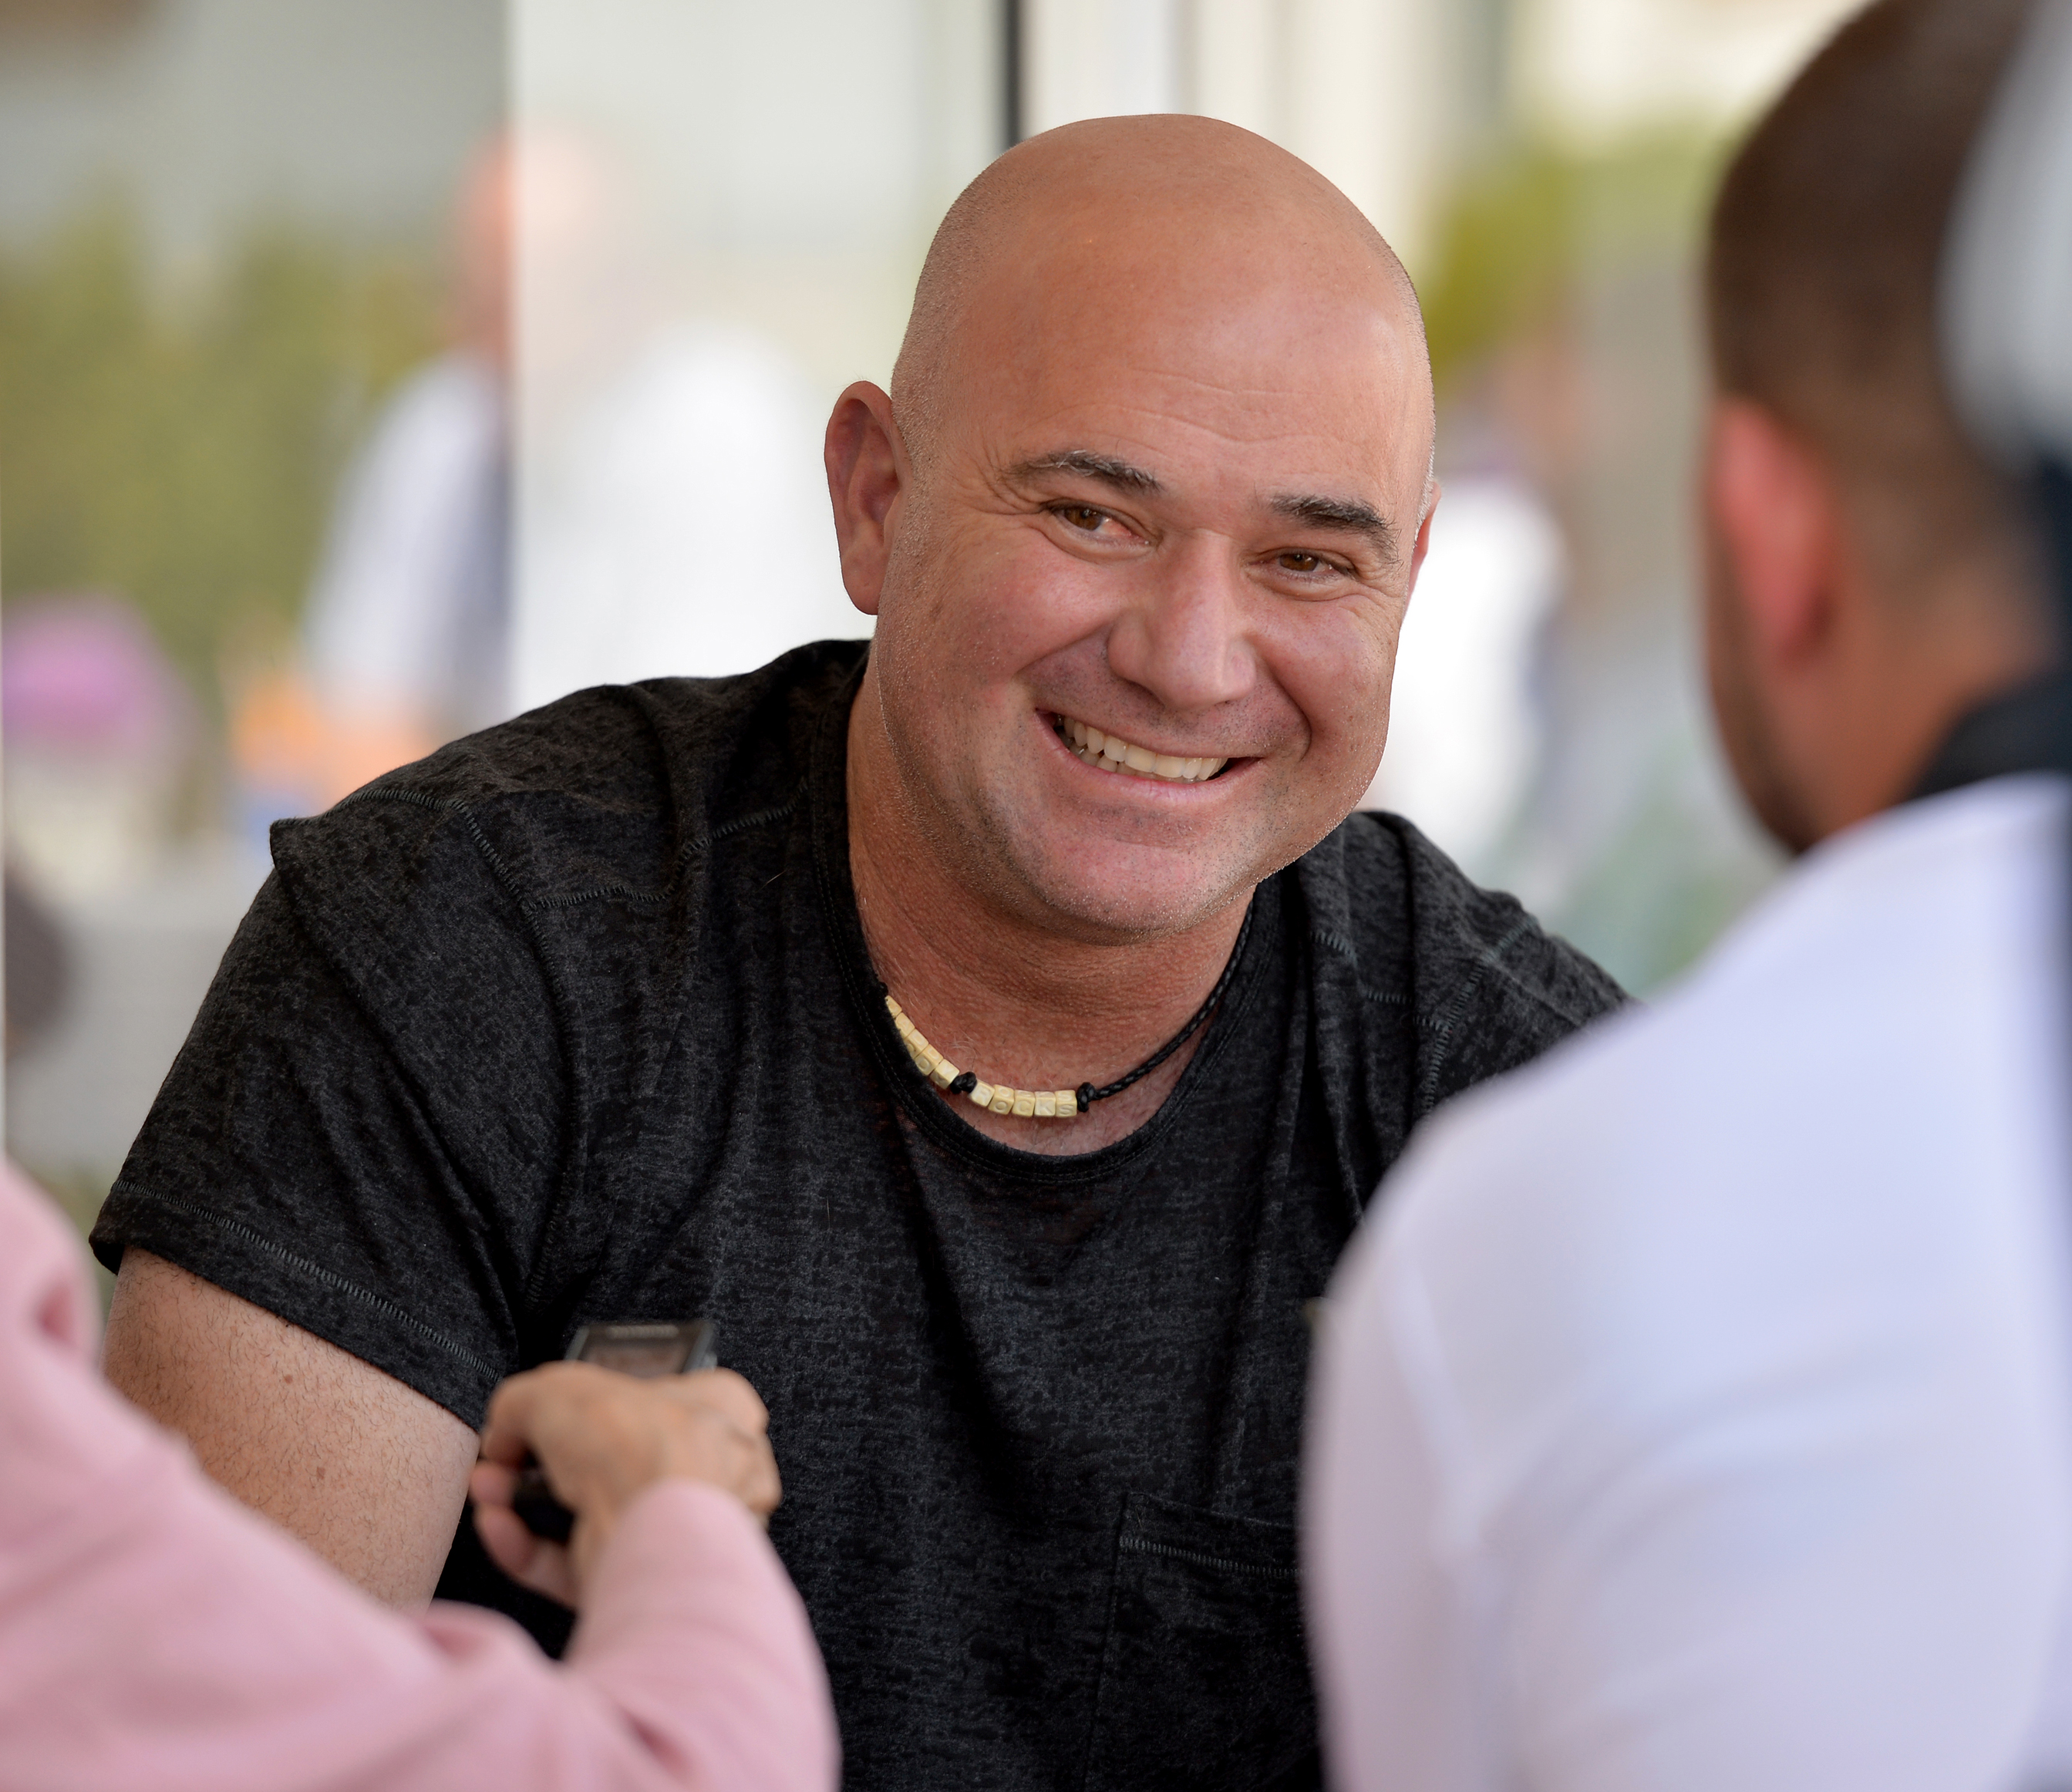 Andre Agassi, global ambassador for coffee company, Lavazza at Wimbledon, July 2017 (Graham Flack/Lavazza/PA)